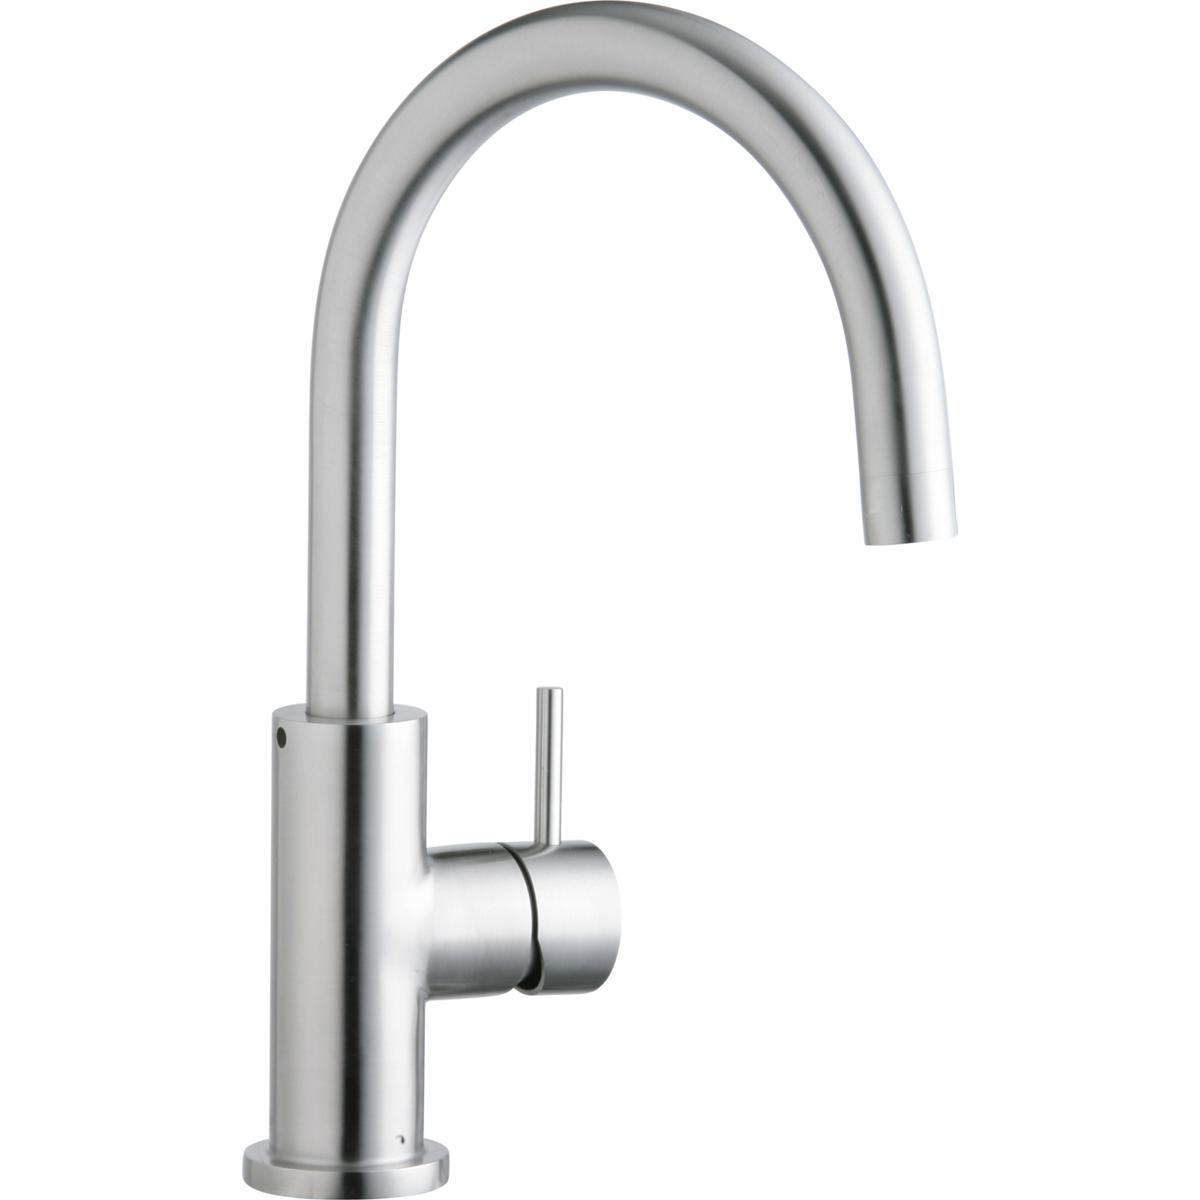 Elkay Allure Single Hole Kitchen Faucet with Lever Handle Satin Stainless Steel-DirectSinks